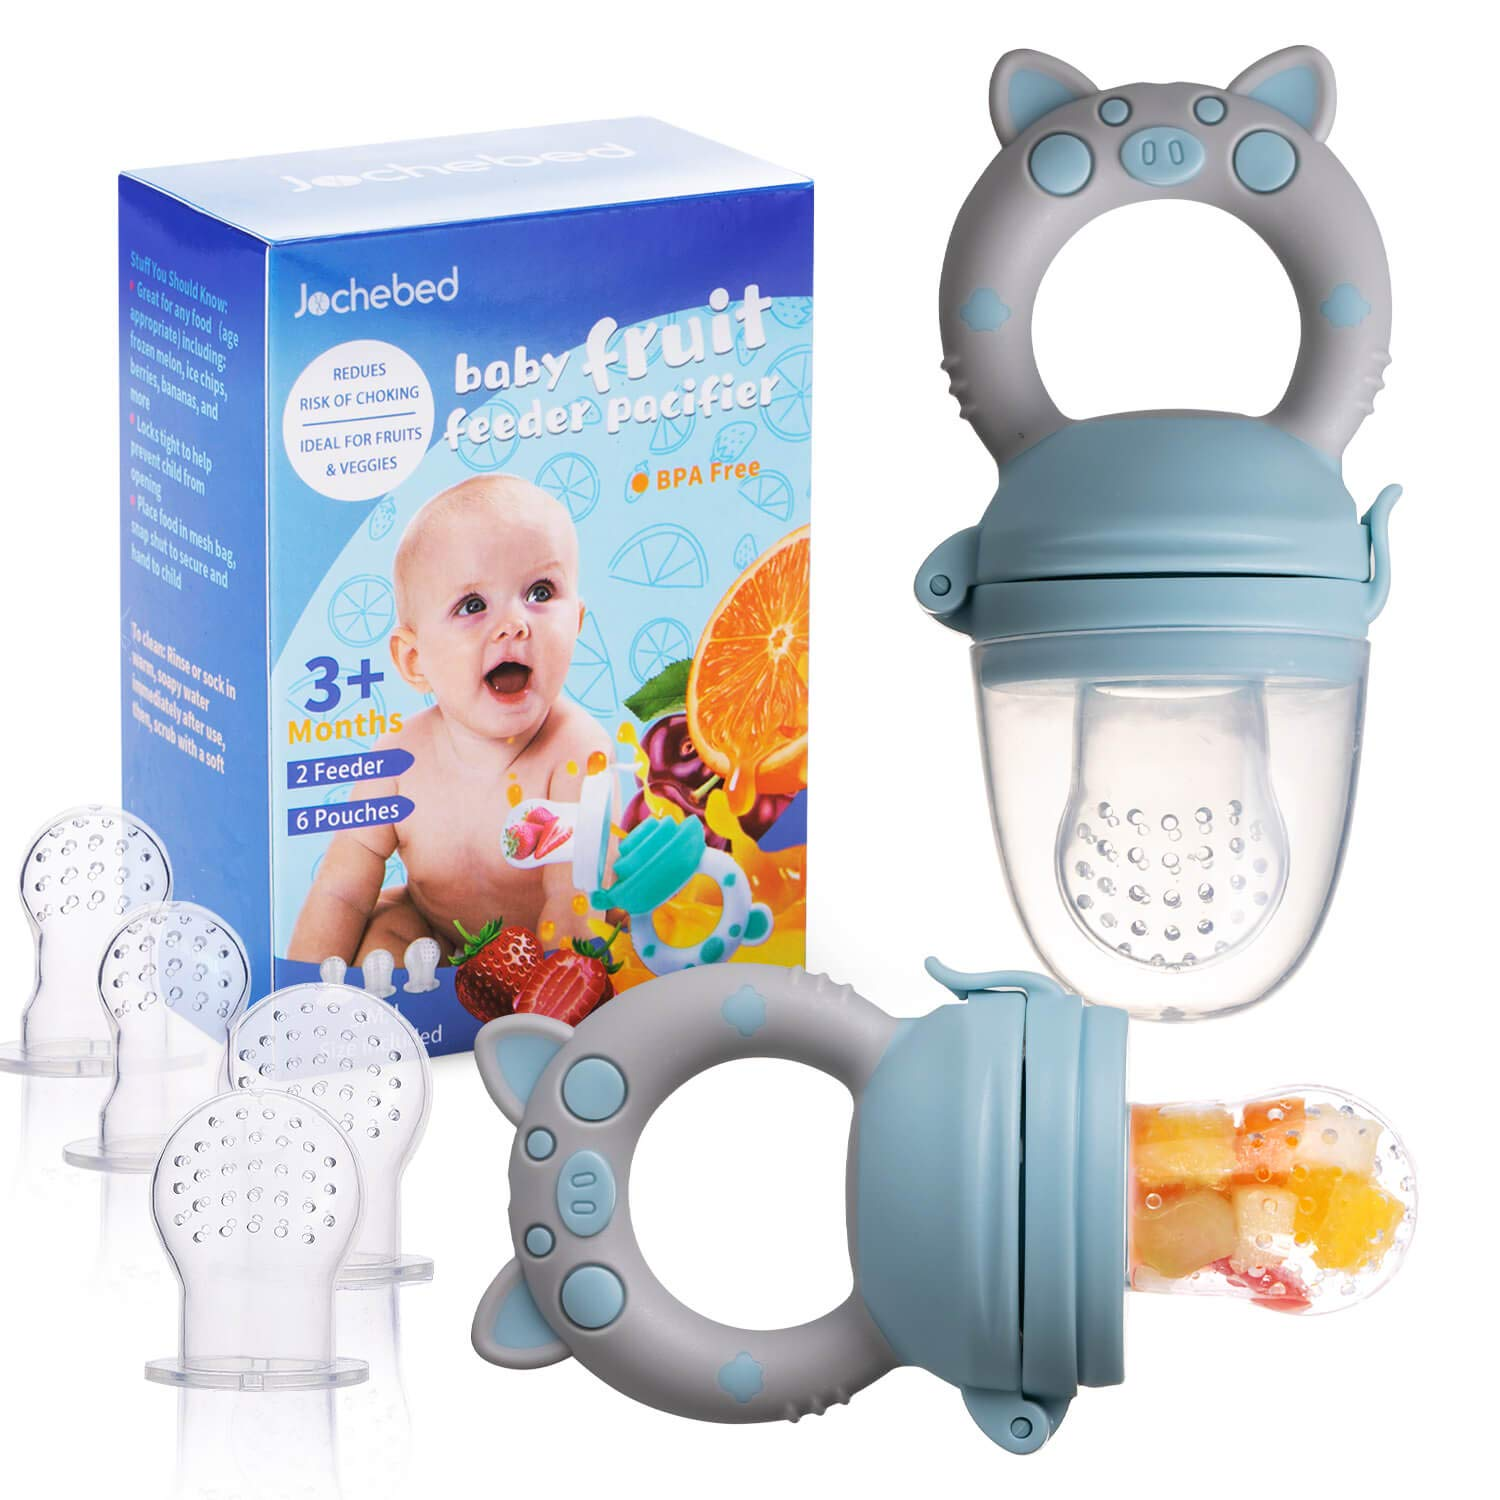 Baby Fruit Food Feeder Pacifier - Fresh Teething Pacifiers, Infant Fruit Teething Teether Toy for 3-24 Months, 6 Pcs Silicone Pouches for Toddlers & Kids & Babies, Piggy Handle 2-Pack (Blue & Gray)